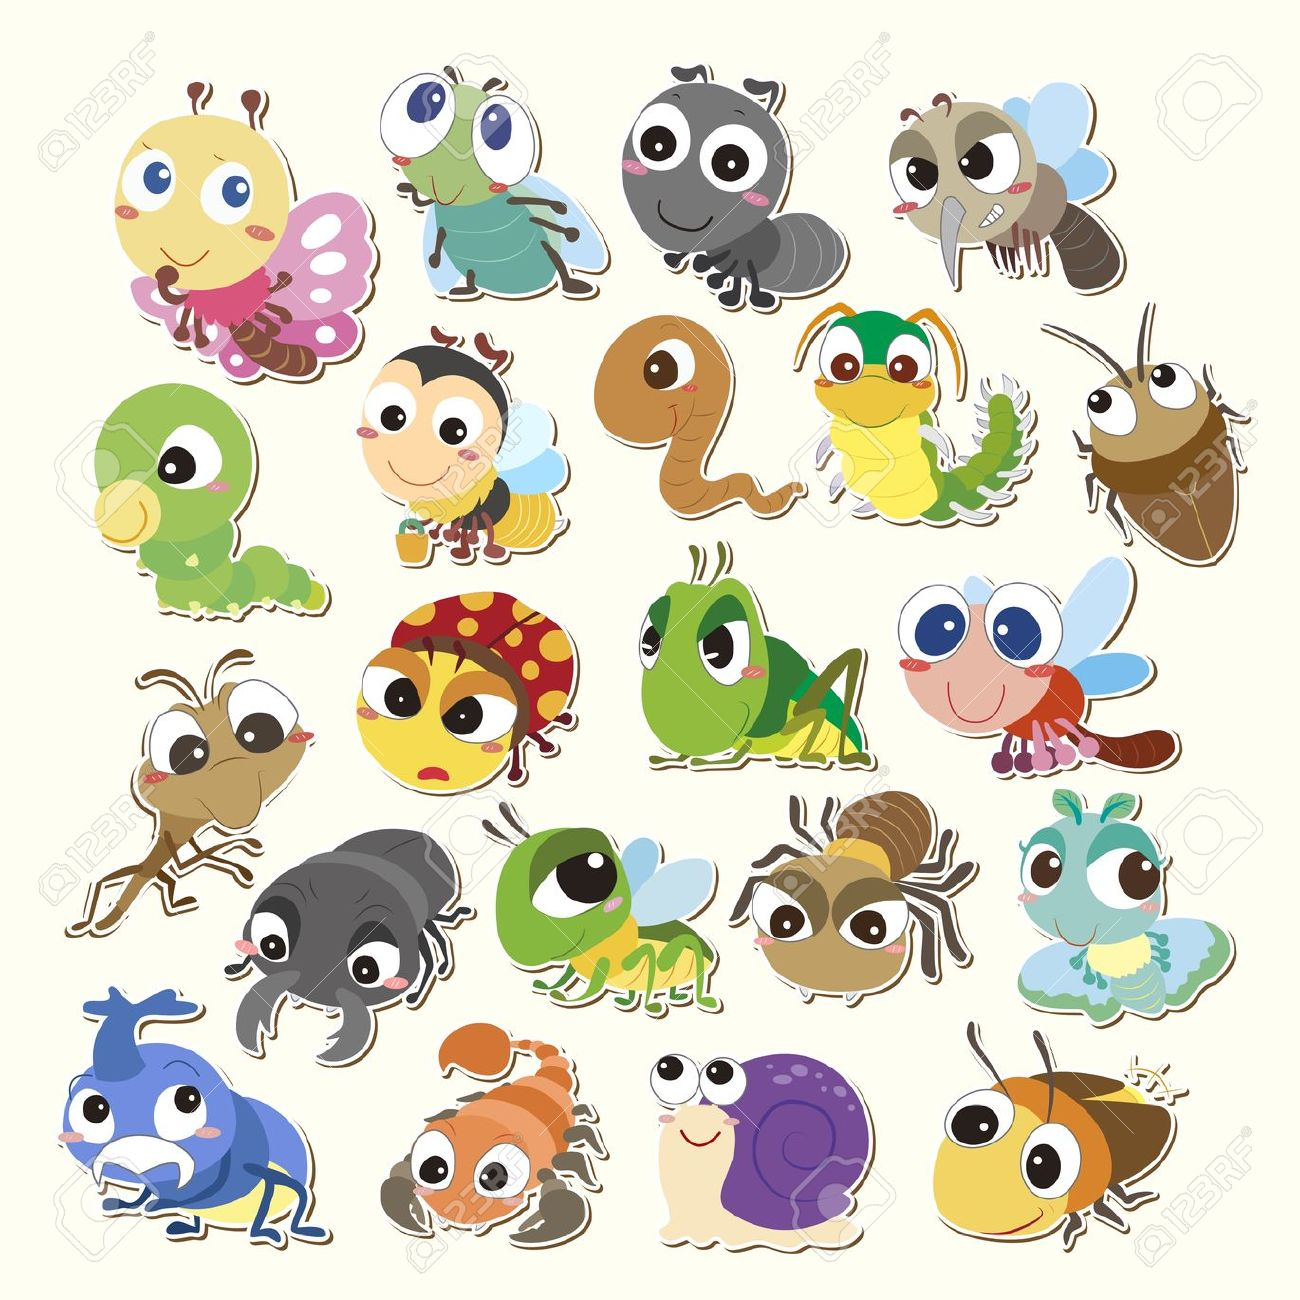 clipart firefly - Clipground